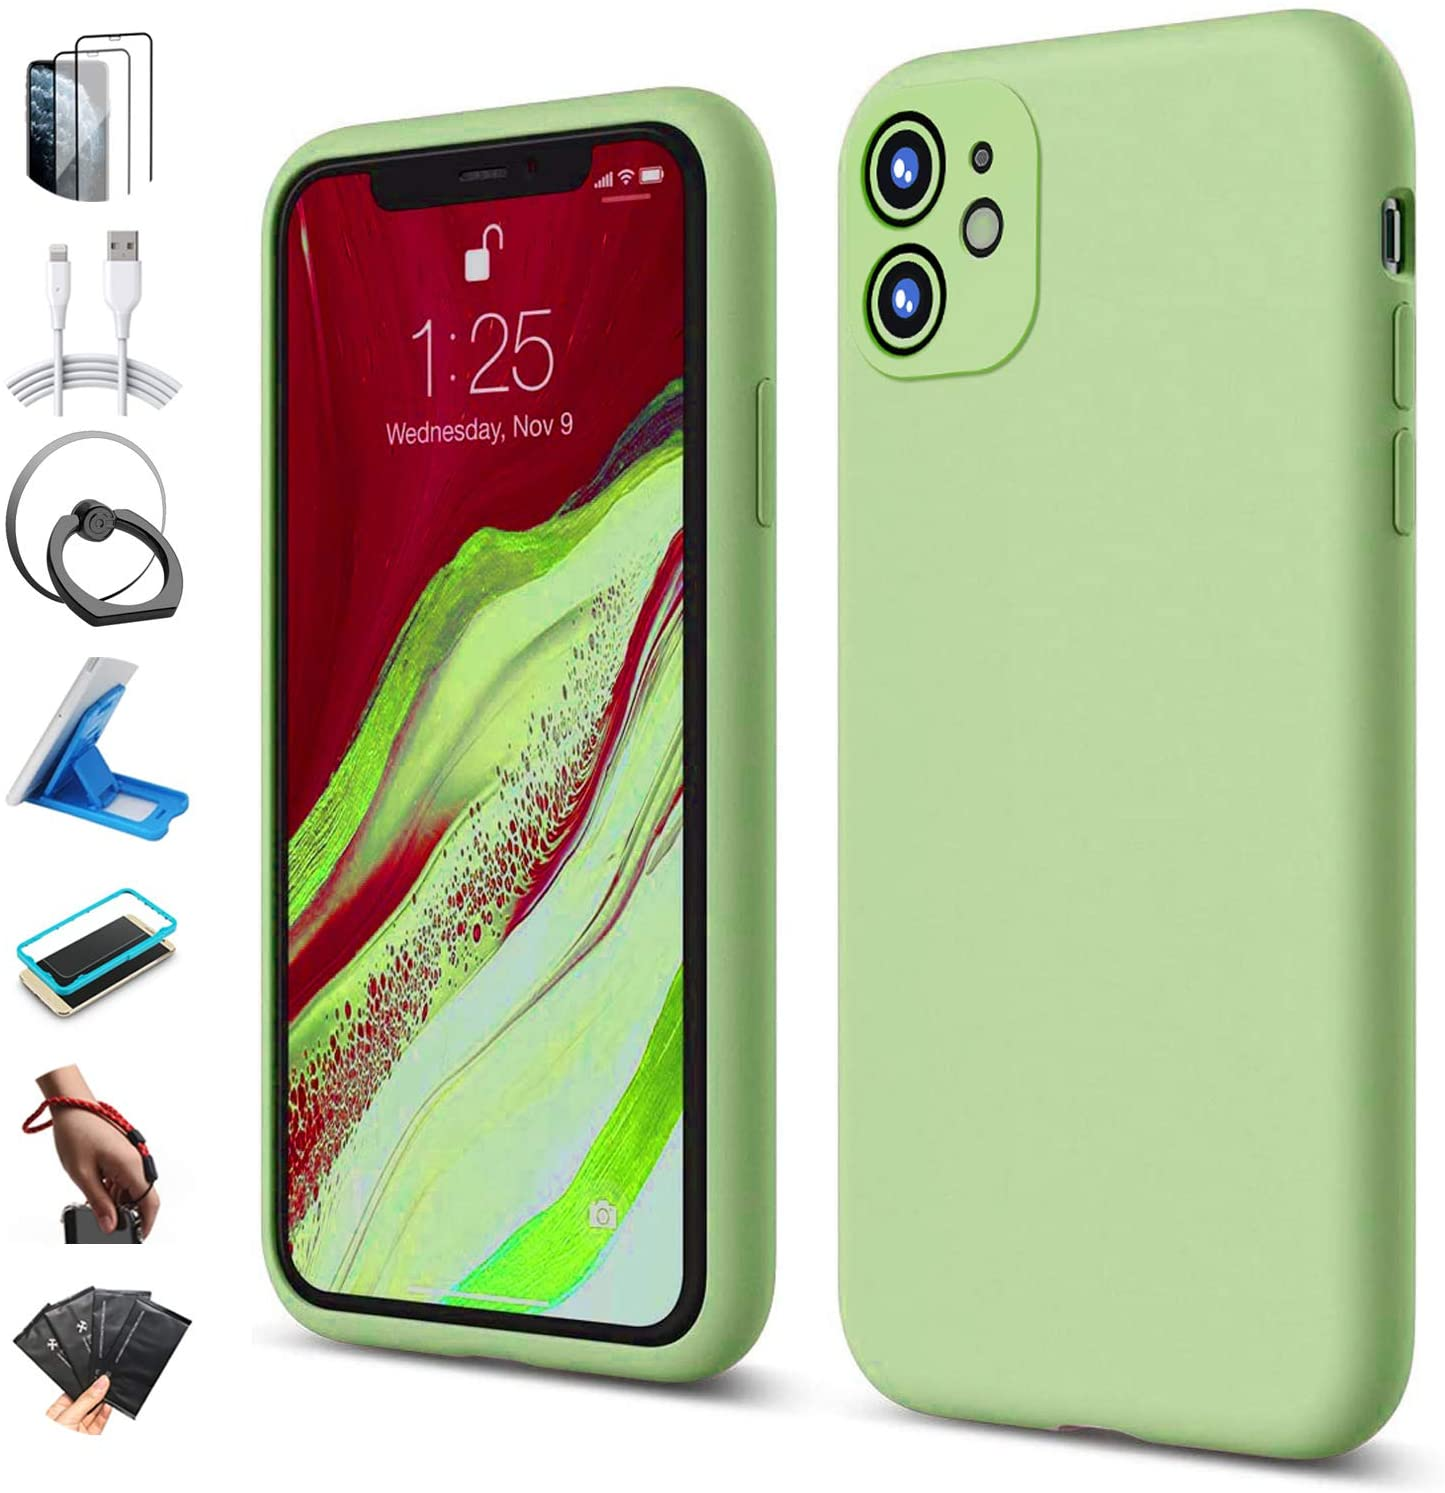 iPhone 11 Case Silicone, with 2 Pcs Tempered Glass Screen Protector, Cute Slim Soft Liquid Silicone Gel Rubber Bumper Case, Shockproof Microfiber Lining Protective Case Cover for iPhone 11 - Green